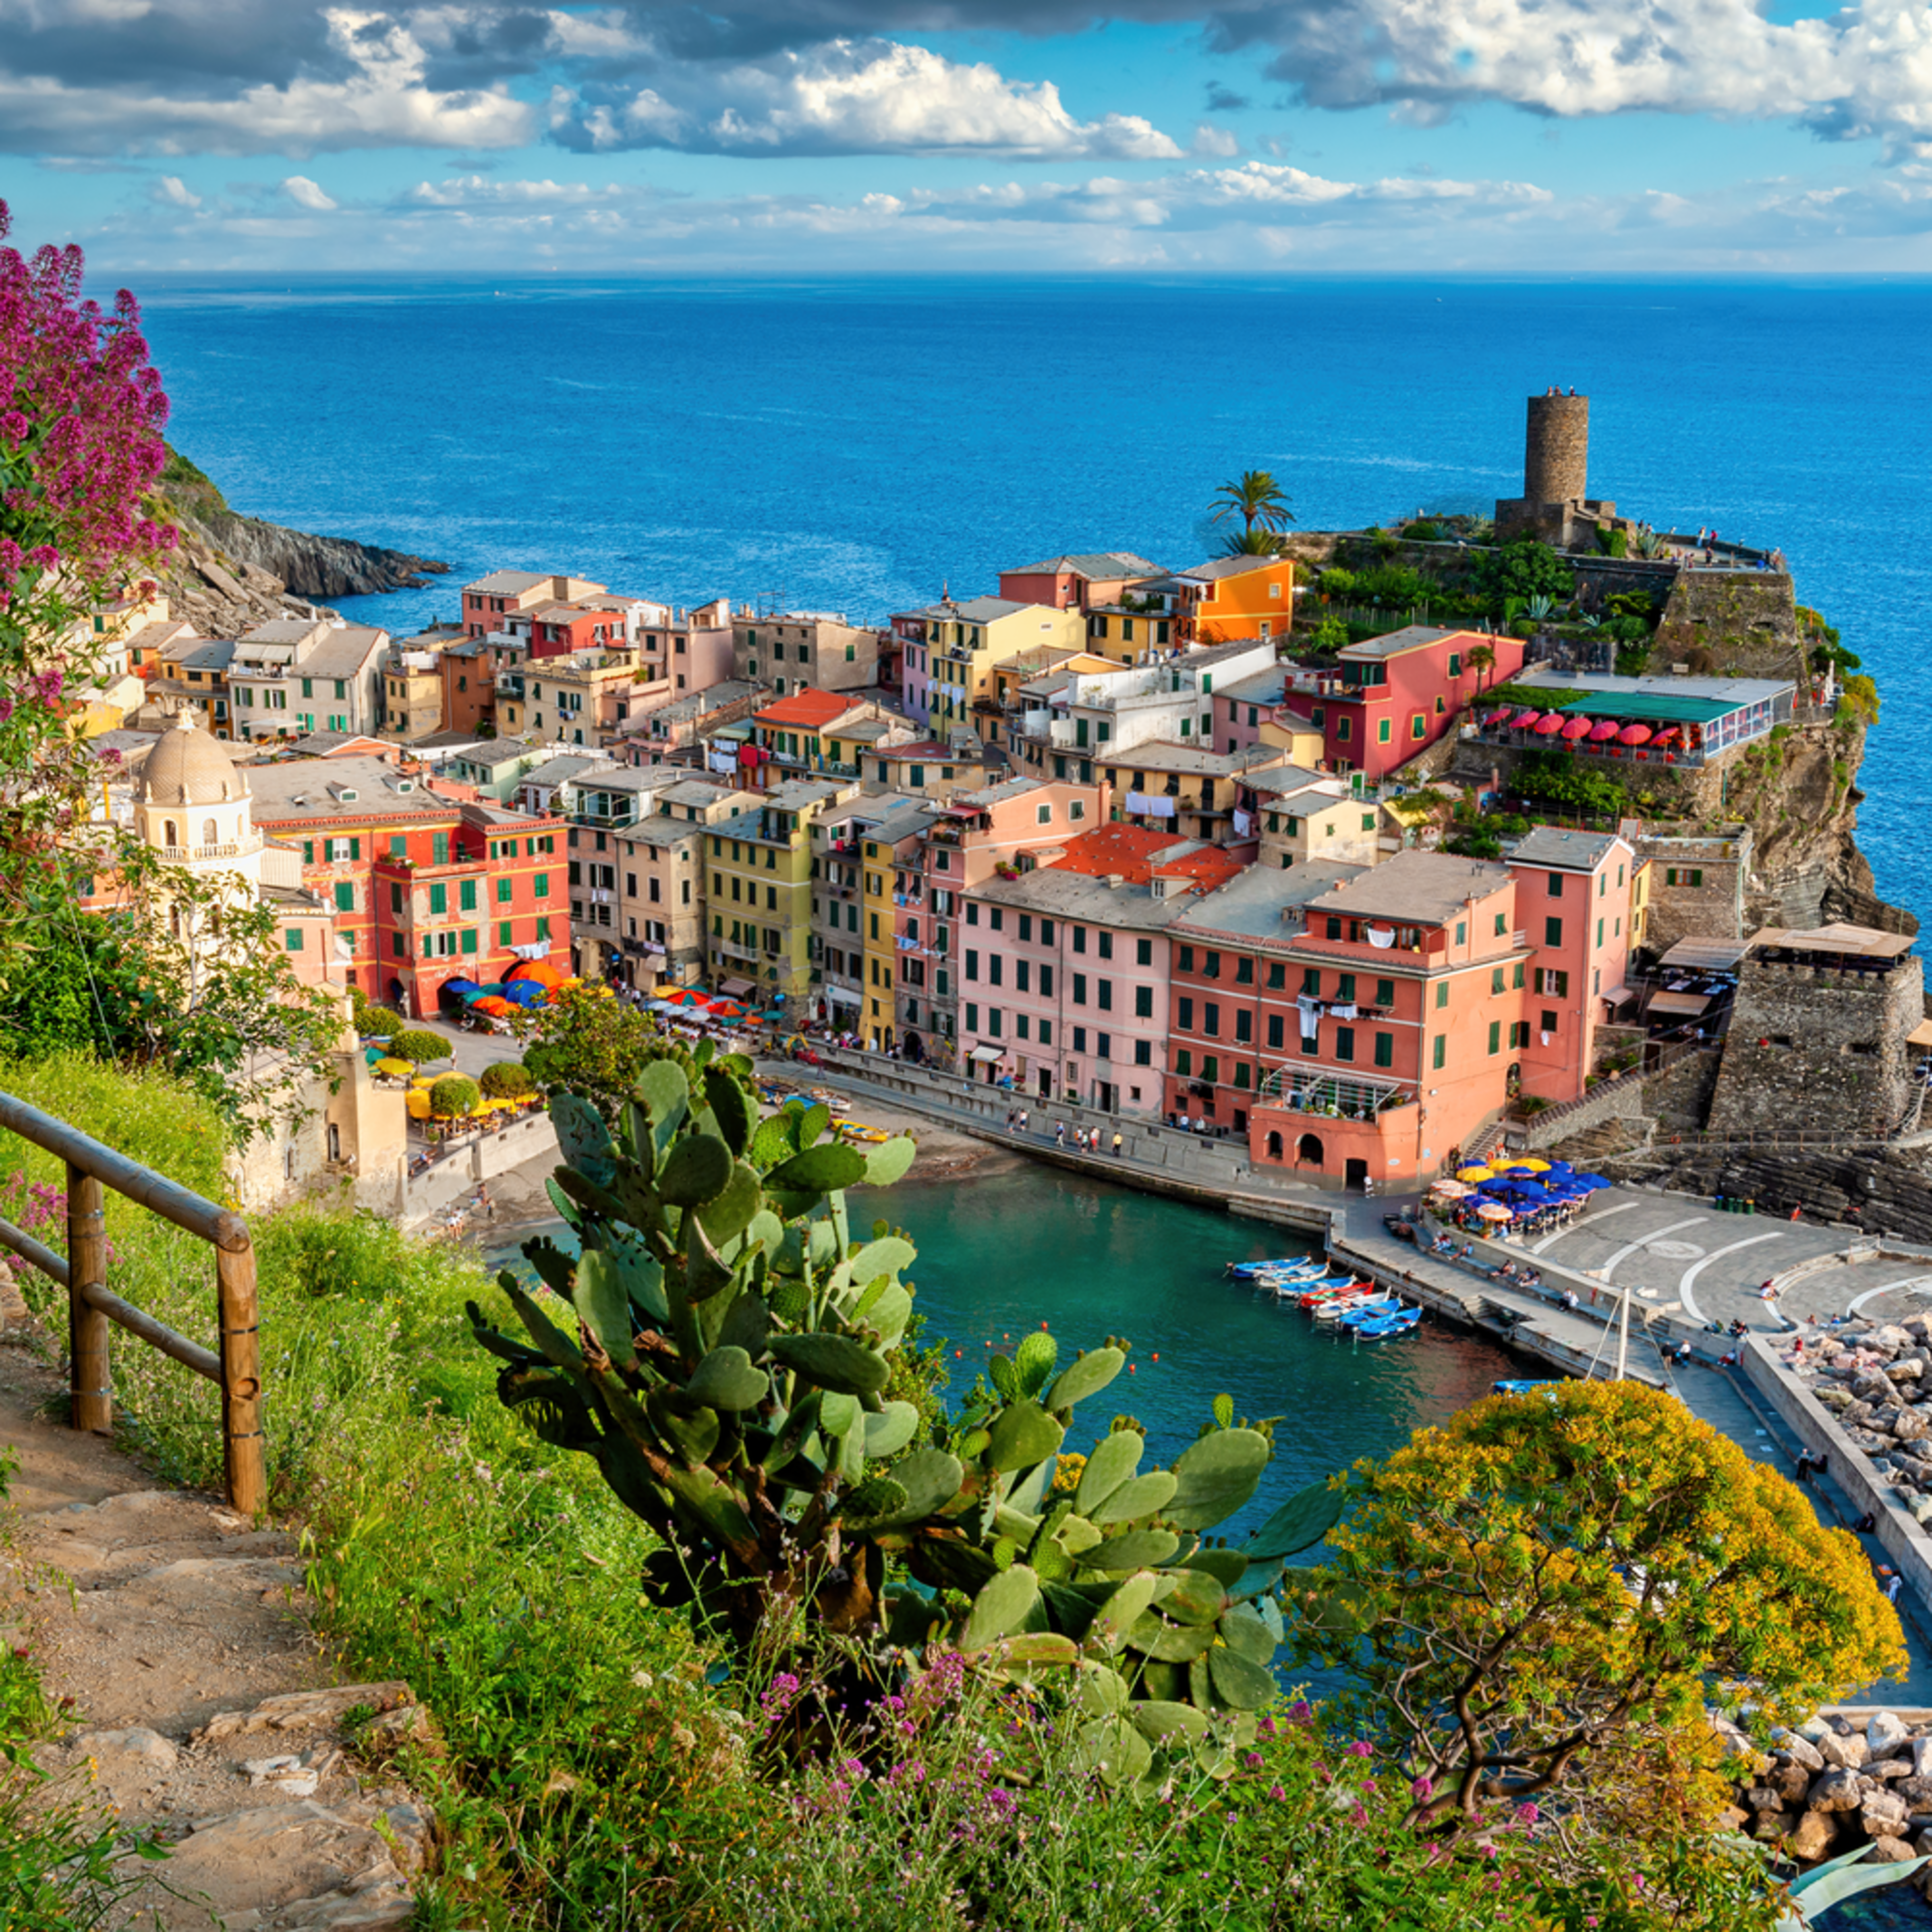 Vernazza cinque terre from above on trail path italy s0fu5j